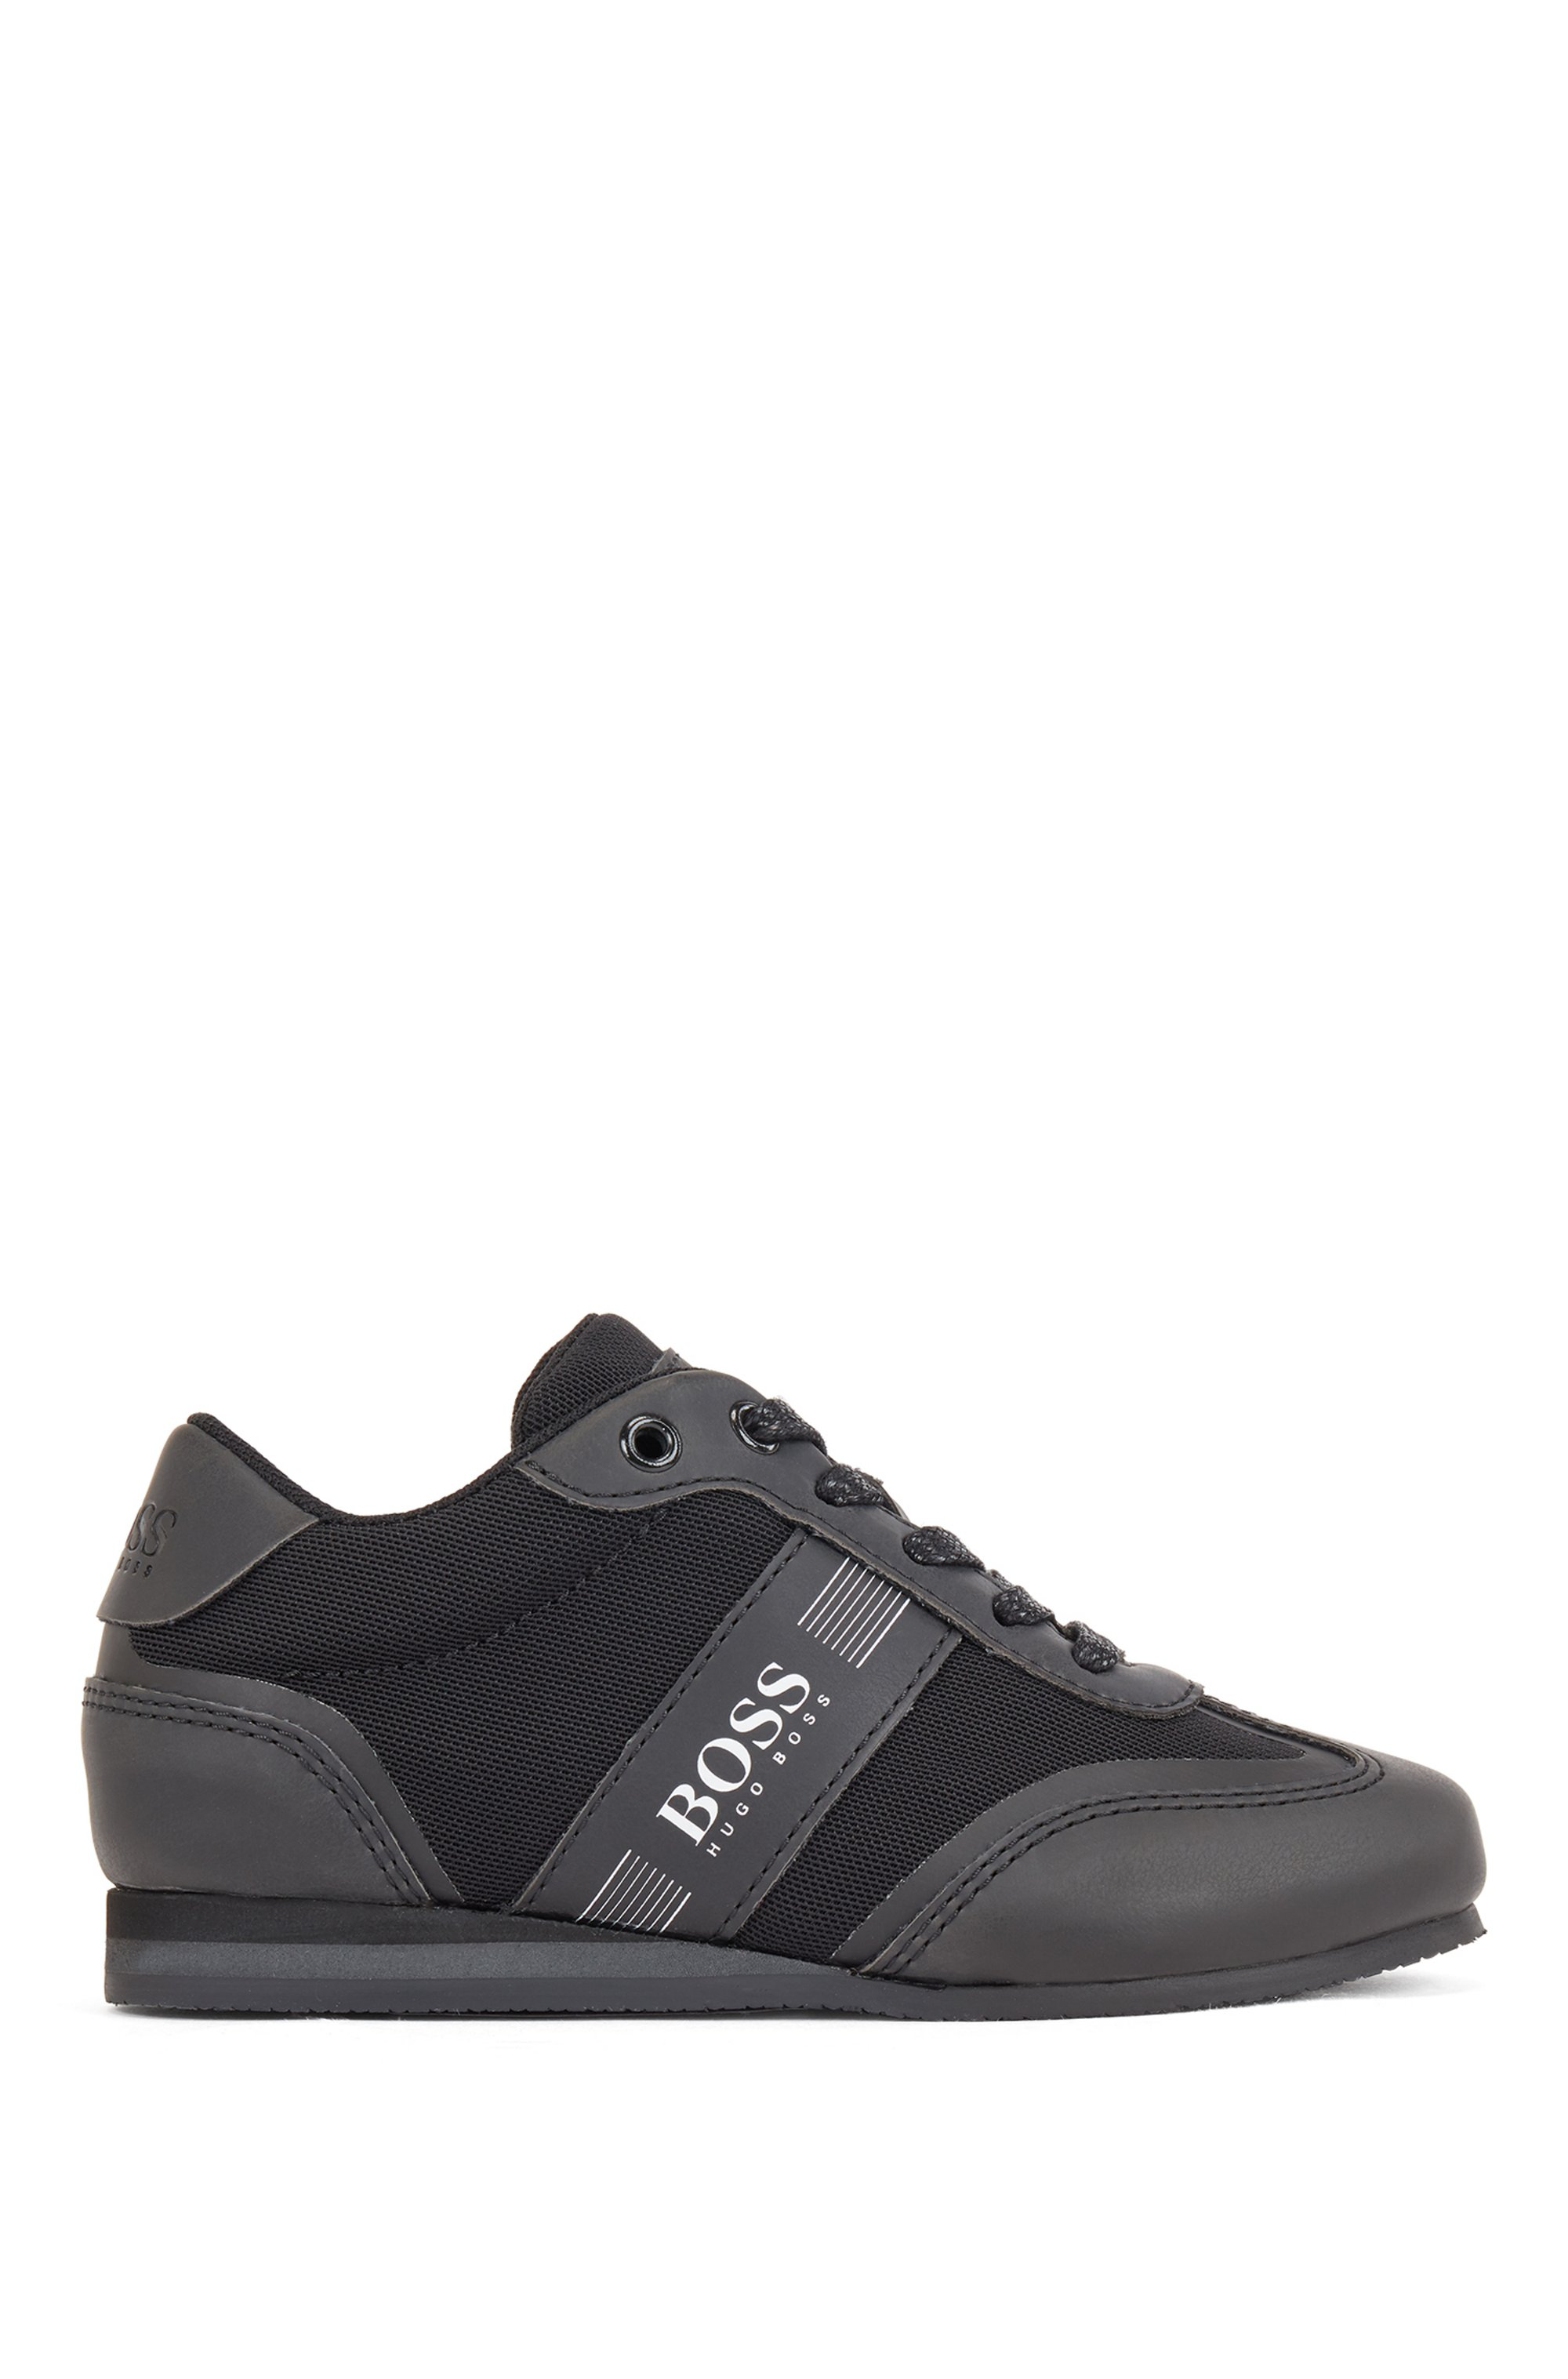 Kids' lace-up trainers in faux leather and mesh